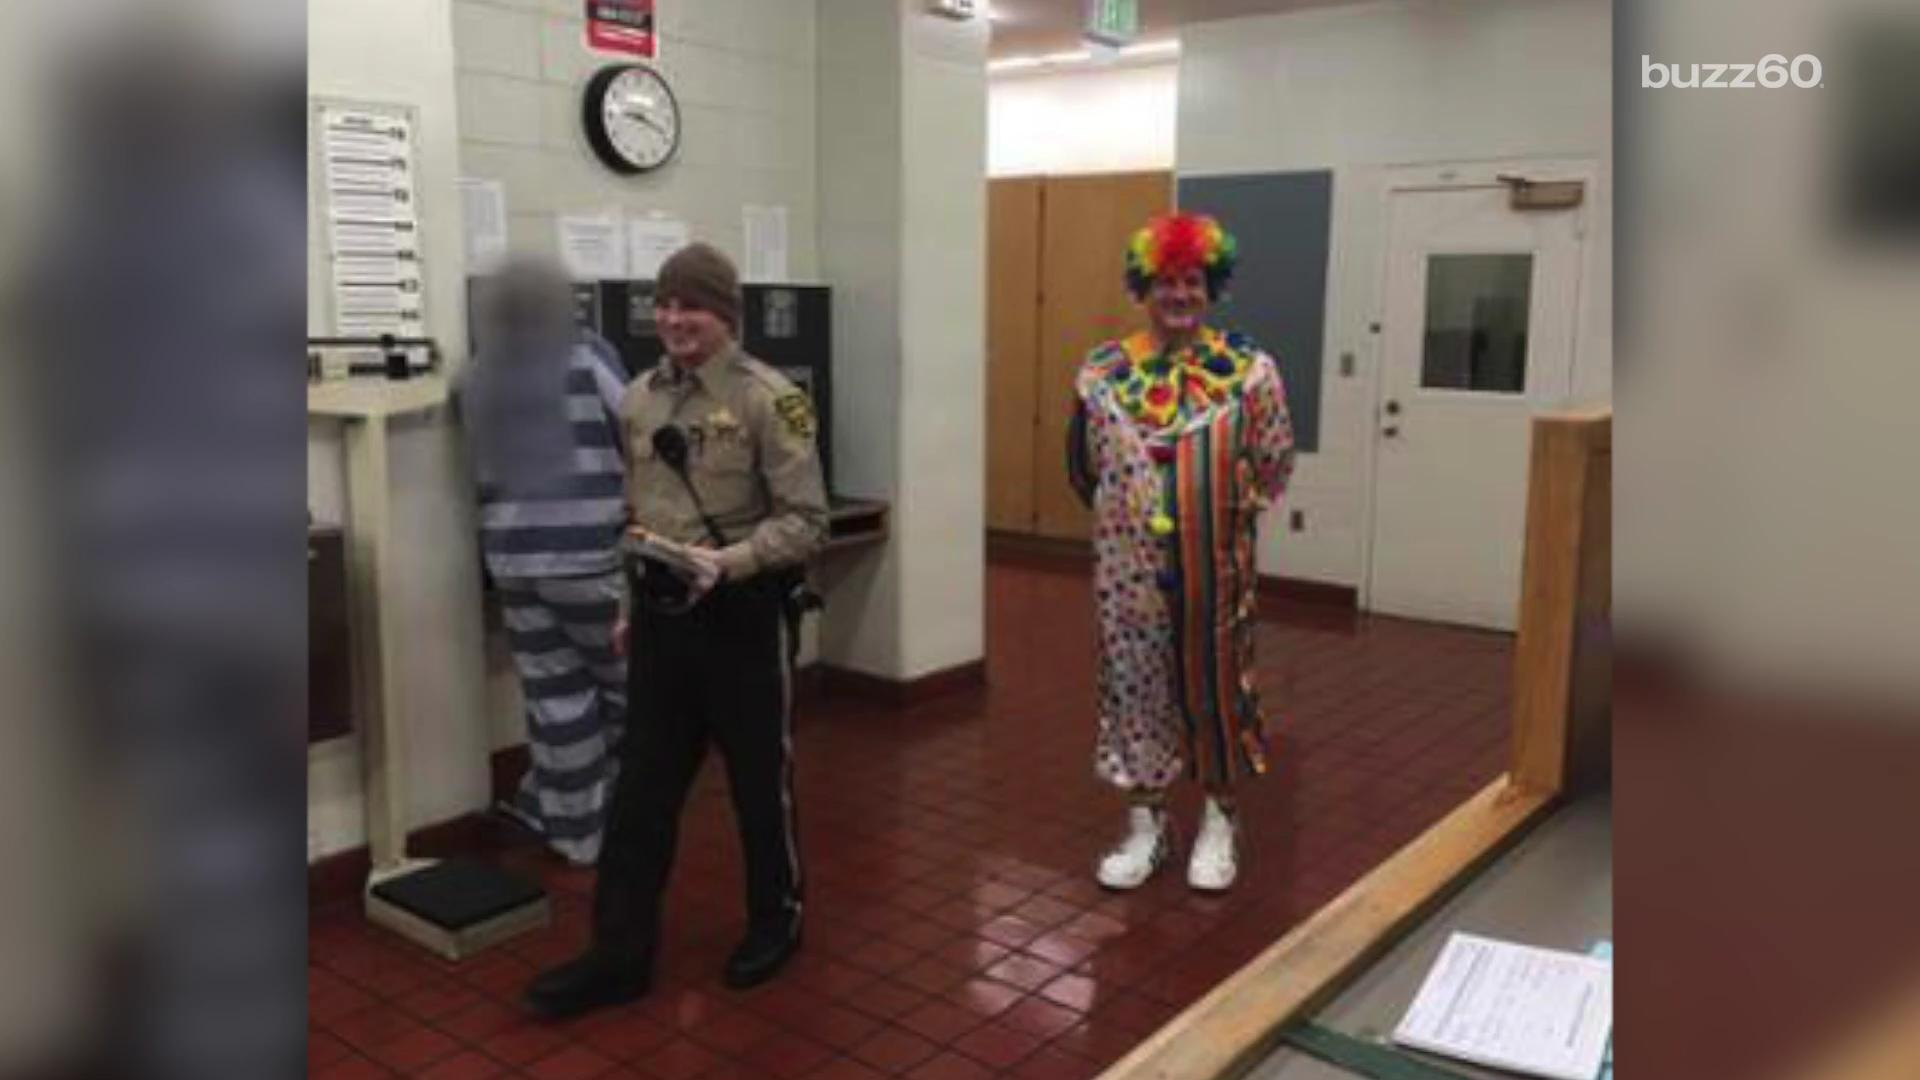 The suspect didn't say why he was wearing a clown costume, but police say he admitted to having several drinks before hitting the road. Gillian Pensavalle (@GillianWithaG) has details.